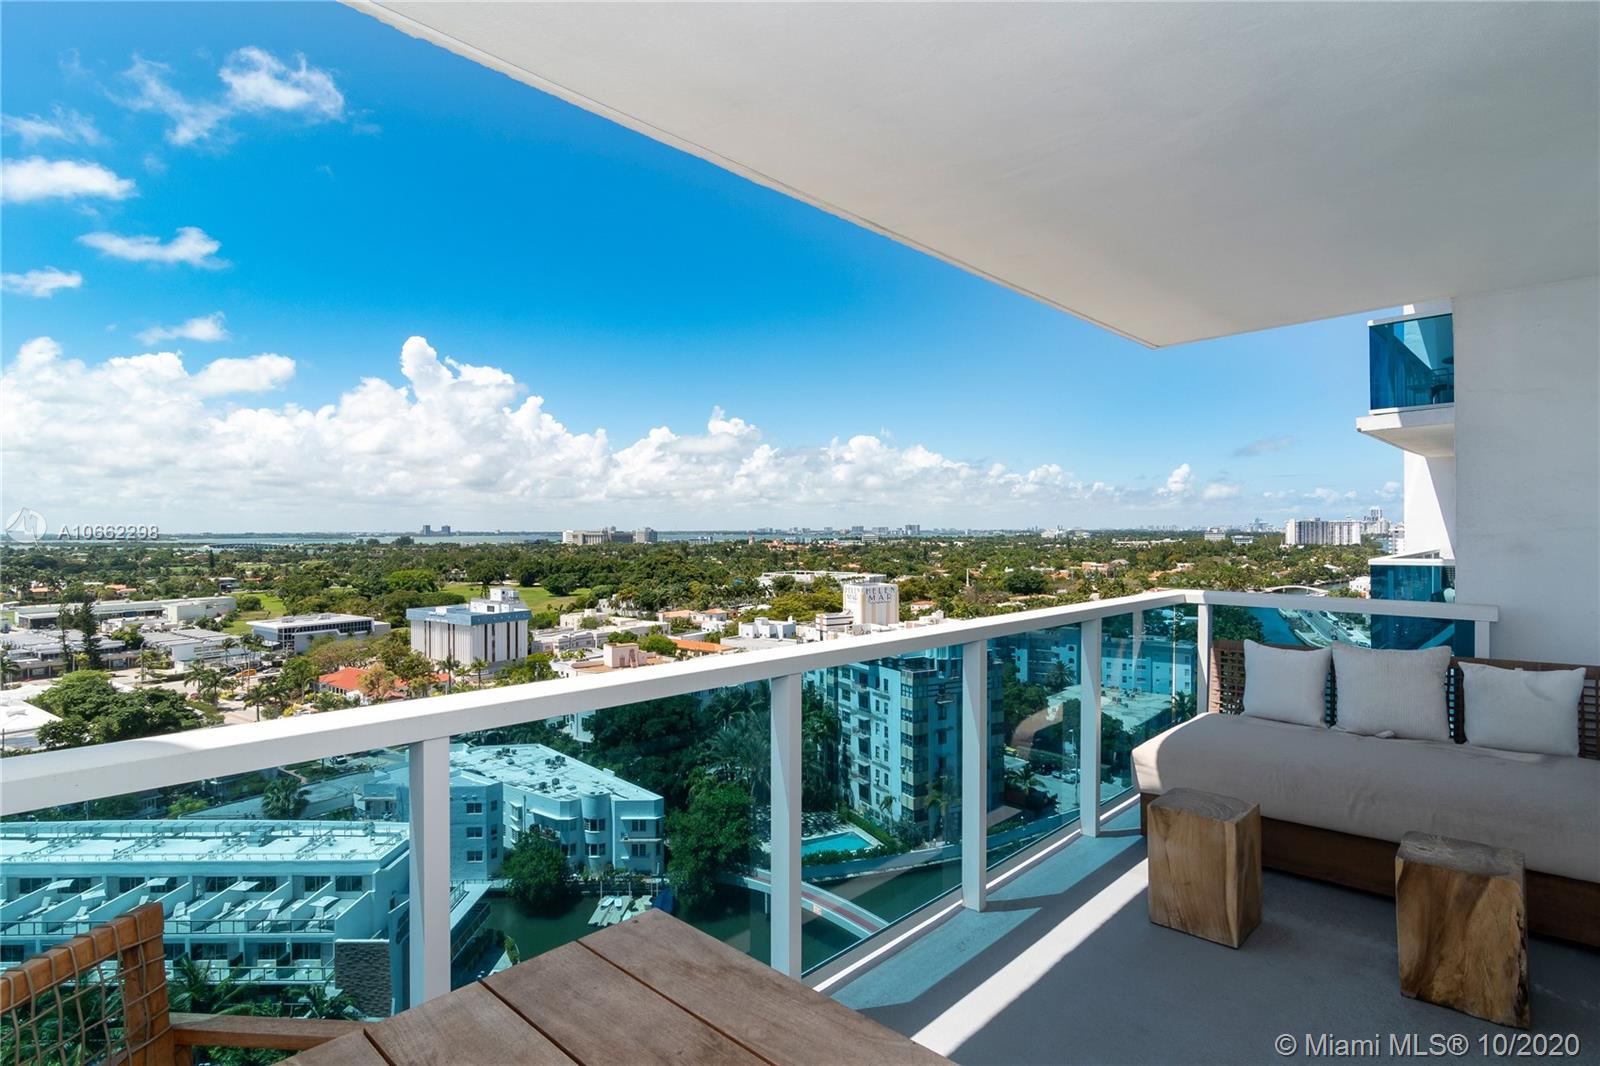 PRICE DRASTICALLY REDUCED TO SELL!!! Amazing furnished unit by Debora Aguiar, 1 bed, 1.5 baths, at the luxury project 1 Hotel & Homes, with 24hr concierge, full service building, free Tesla car service for the residents, Gorgeous view of Intracoastal and Miami skyline from the unit. This Unit is a great Investment opportunity, its decorated and ready to be included in the hotel program, with very good income return for the buyer. MUST SEE!!